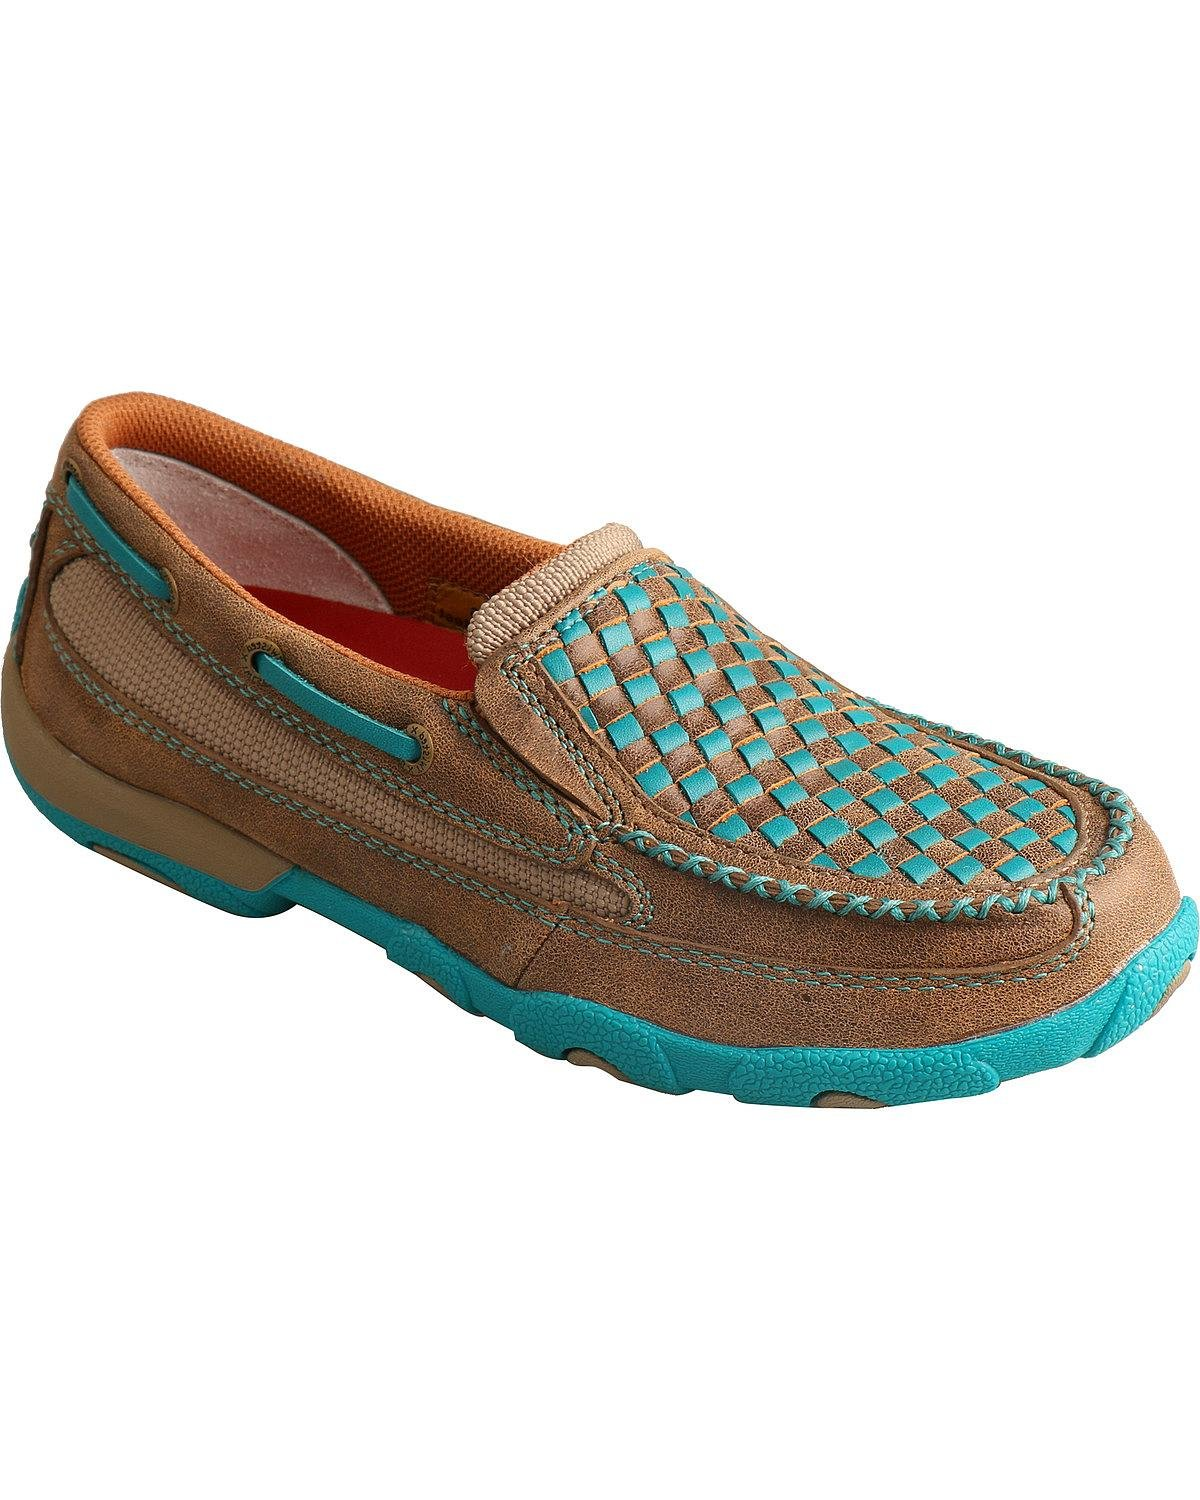 Twisted X Women's Bomber and Turquoise Check Driving Mocs - Wdms006 B01IZRUMFM 7.5 B(M) US|Brown